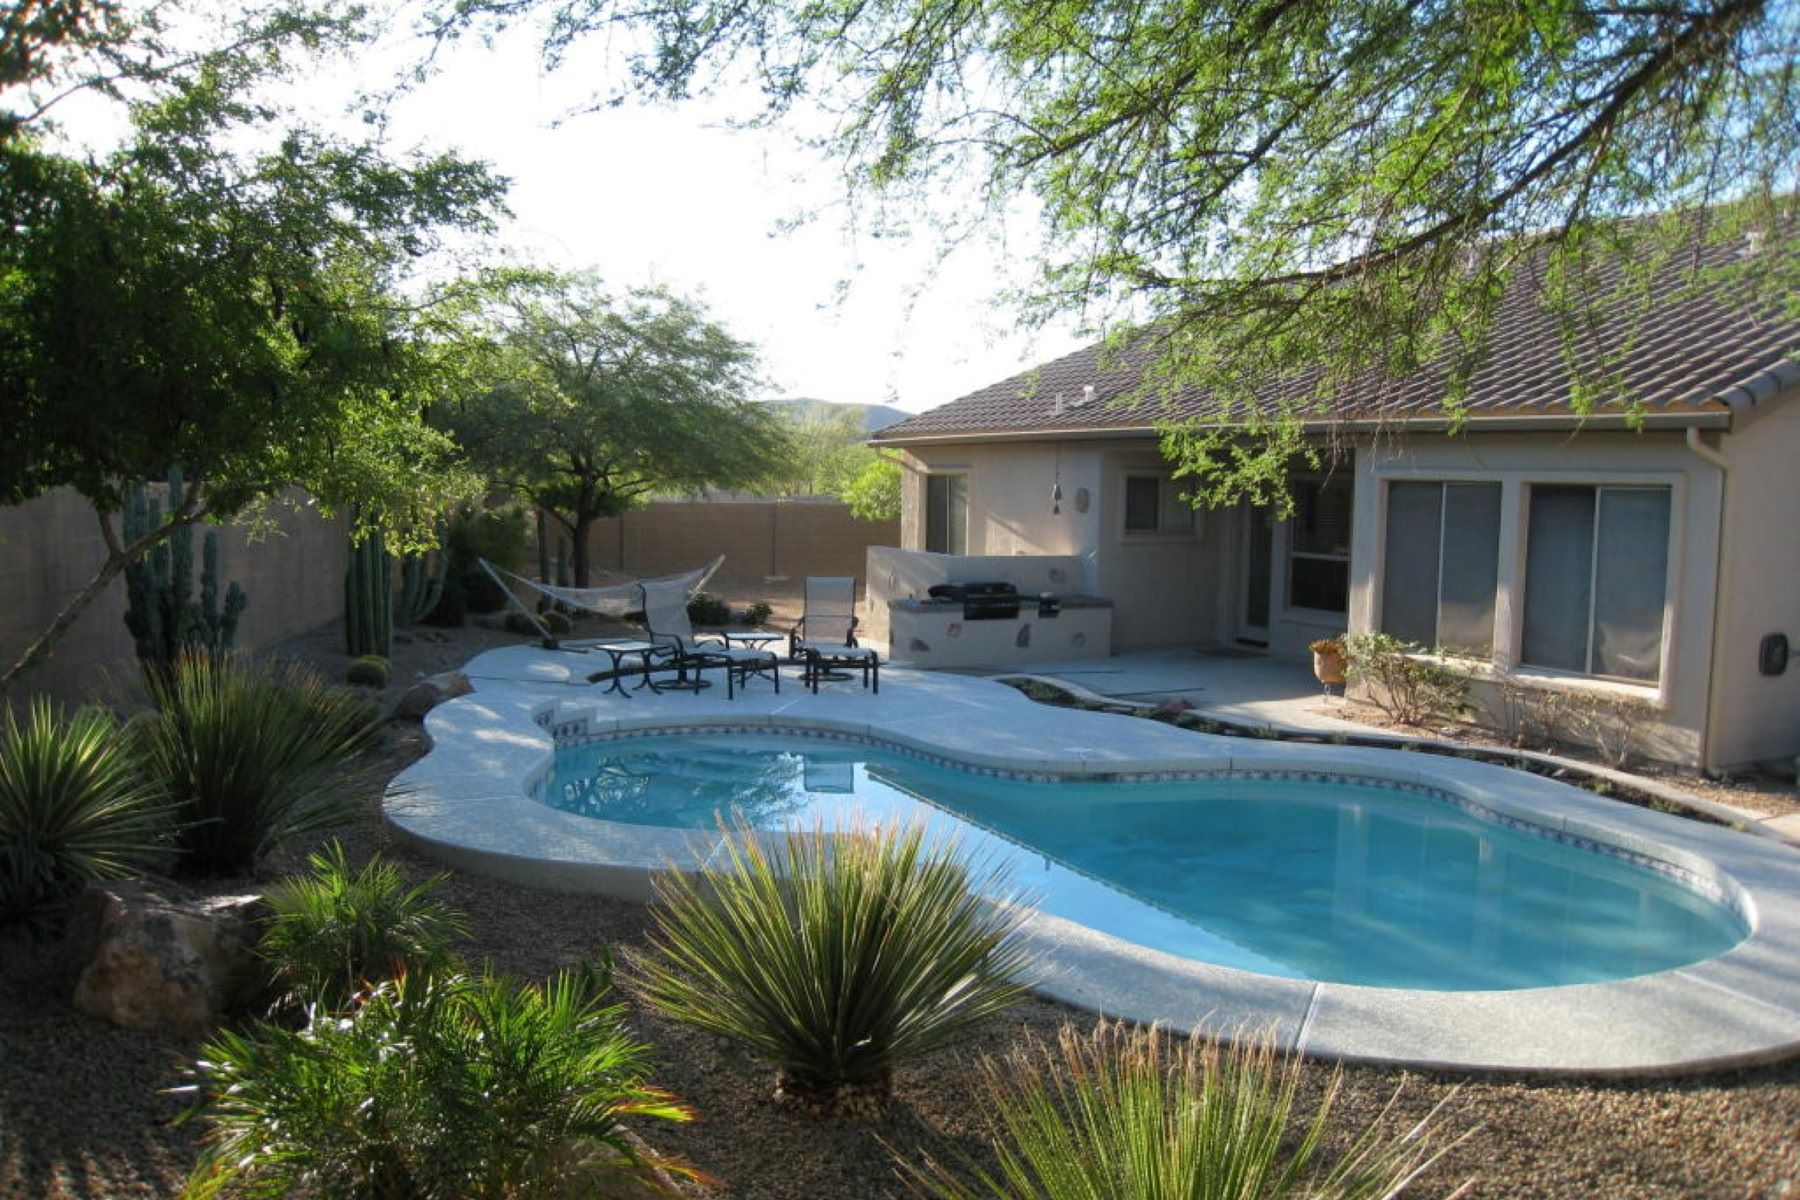 Additional photo for property listing at Beautifully furnished home in a gated community 15899 N 107th Pl Scottsdale, Аризона 85255 Соединенные Штаты